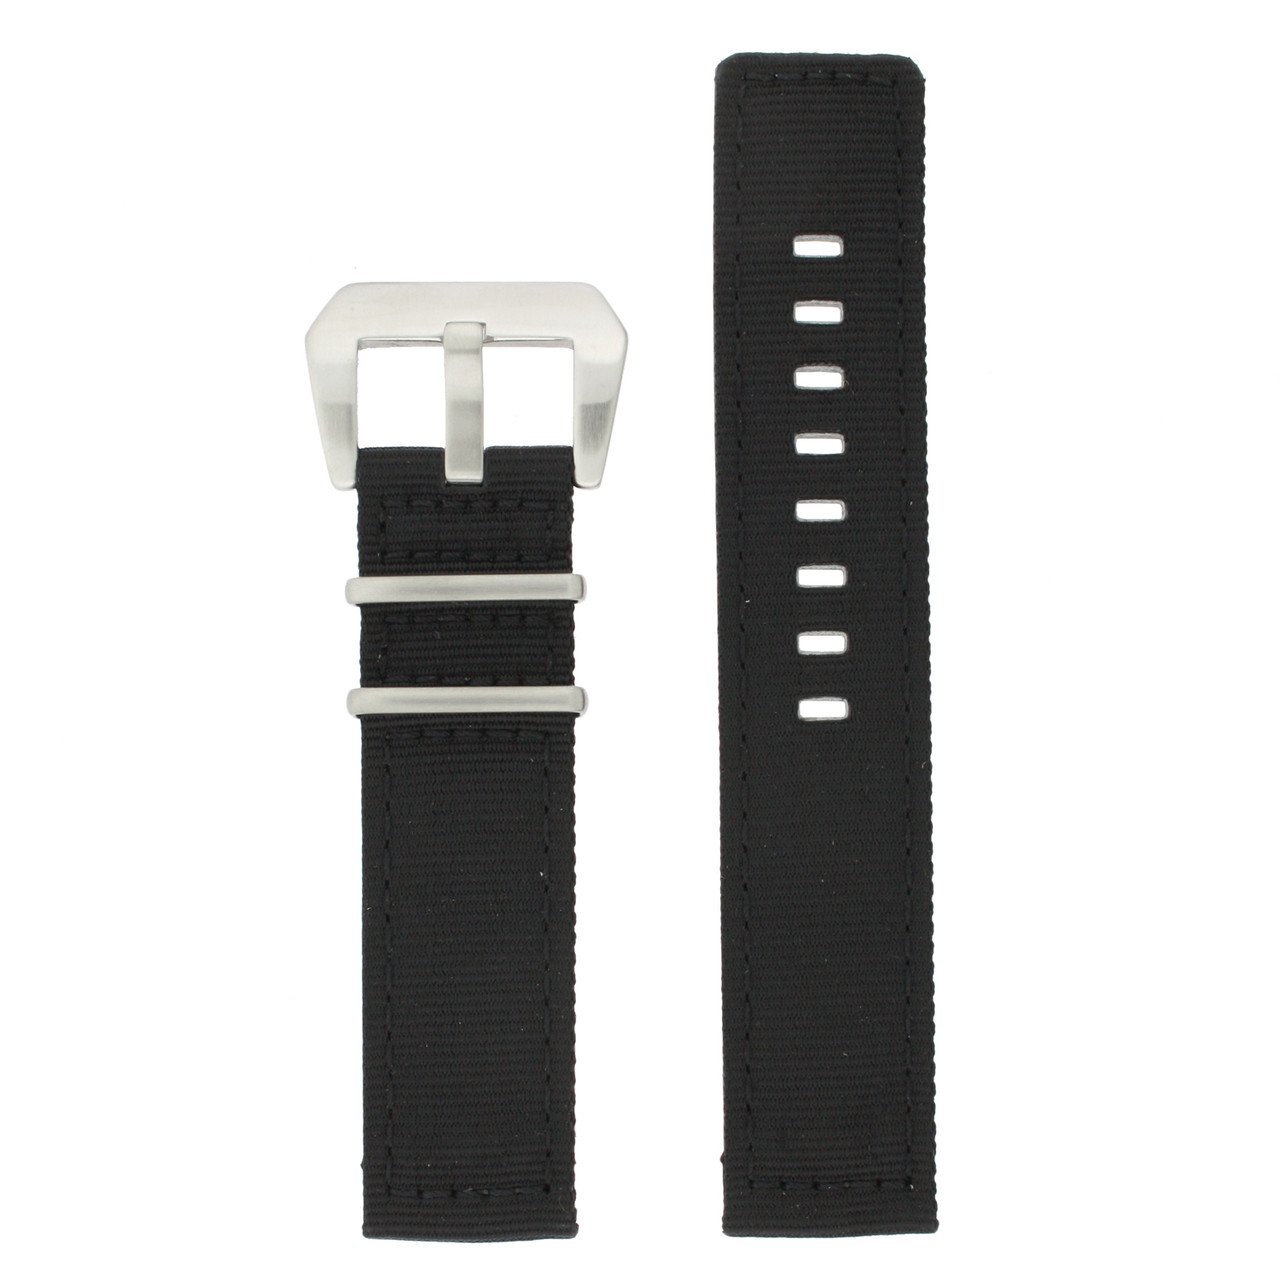 Nylon Watch Band in Black by Tech Swiss - Top View